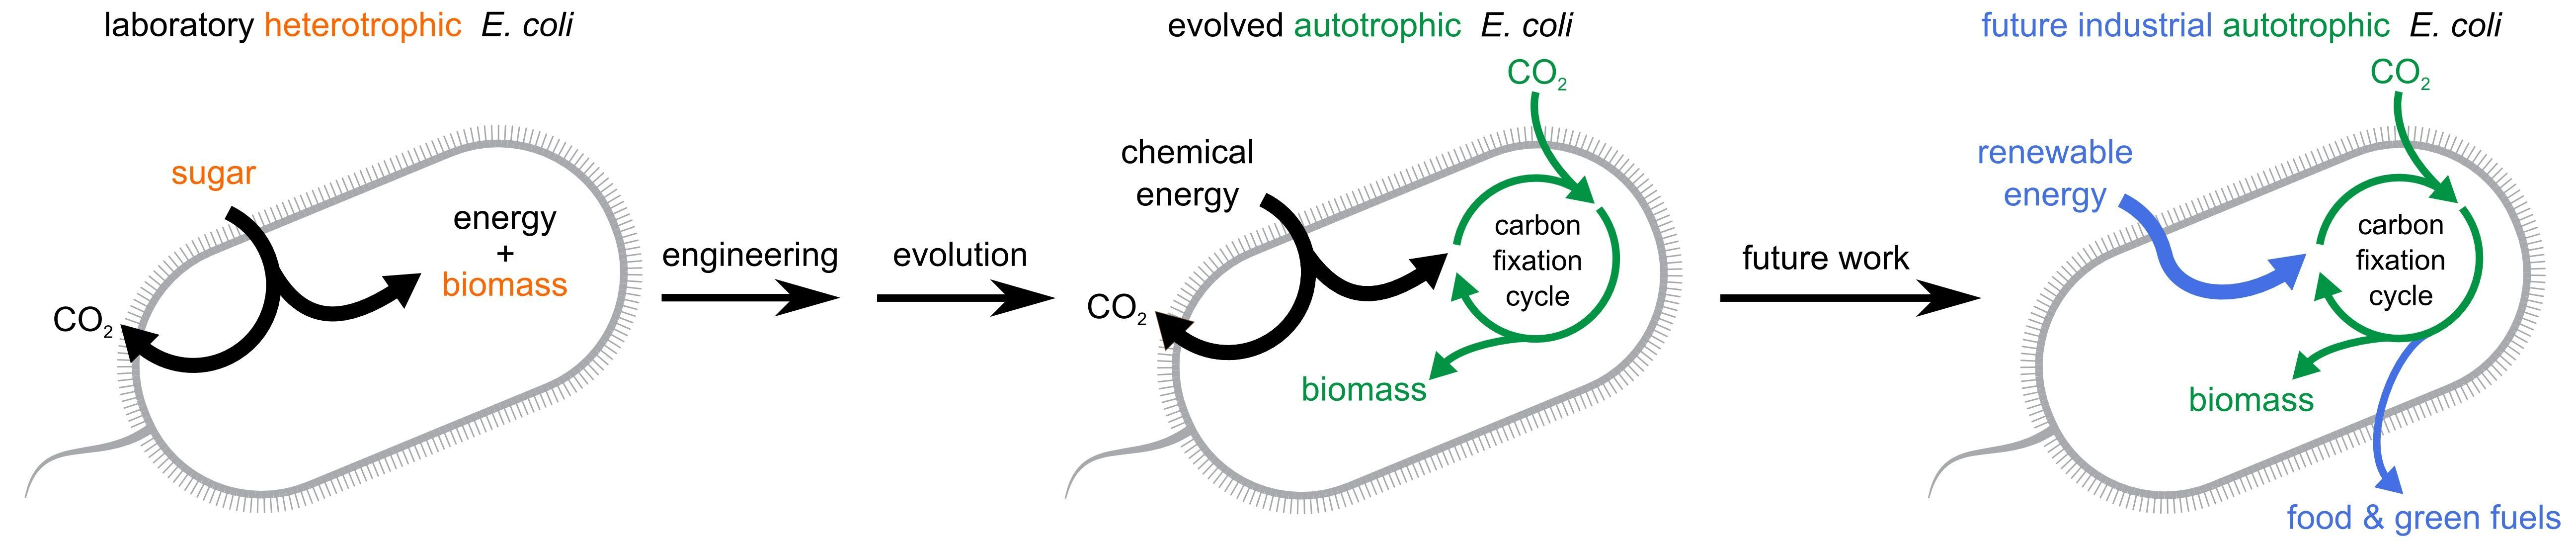 Scientists Engineered An E Coli Bacteria To Eat Co2 Chemical Energy Bacteria Carbon Dioxide